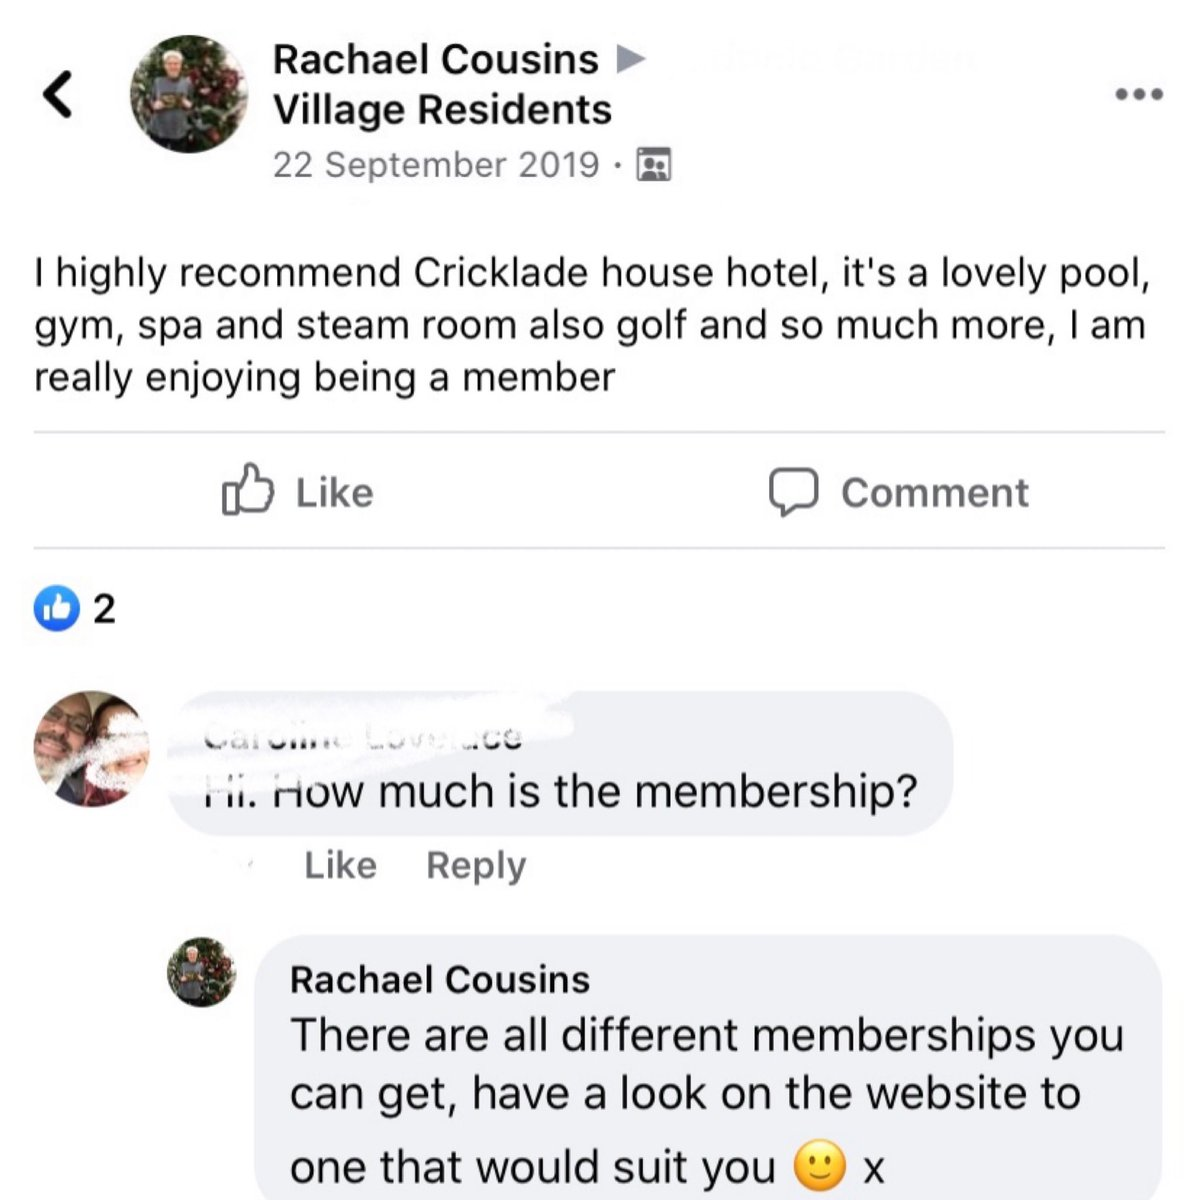 What a great find this was. h/t to me 😁  I bet #RachaelSwindon is laughing, rubbing her hands together whilst the donations are pouring in from her brainwashed followers to help contribute towards her monthly membership. What a luxury.   Please retweet the hell out of this 🙏🏼🙏🏼 https://t.co/B9AdBhUVAK